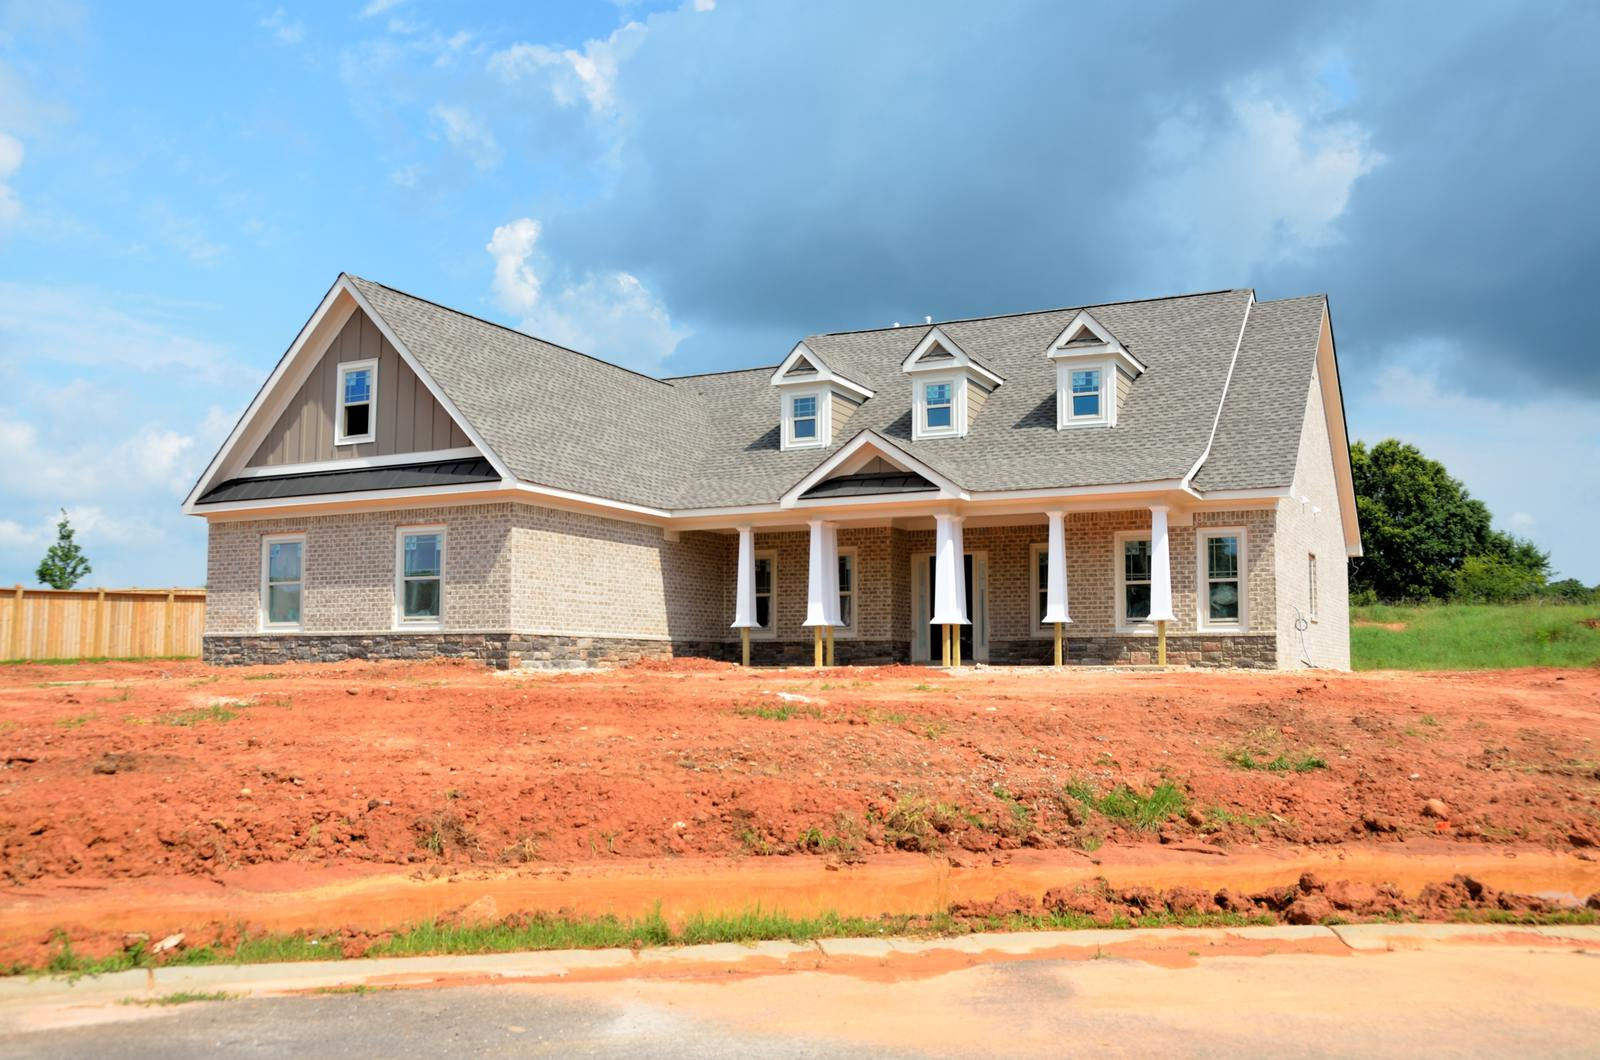 Buying land in northern virginia how to do it for Cost to build a house in northern virginia